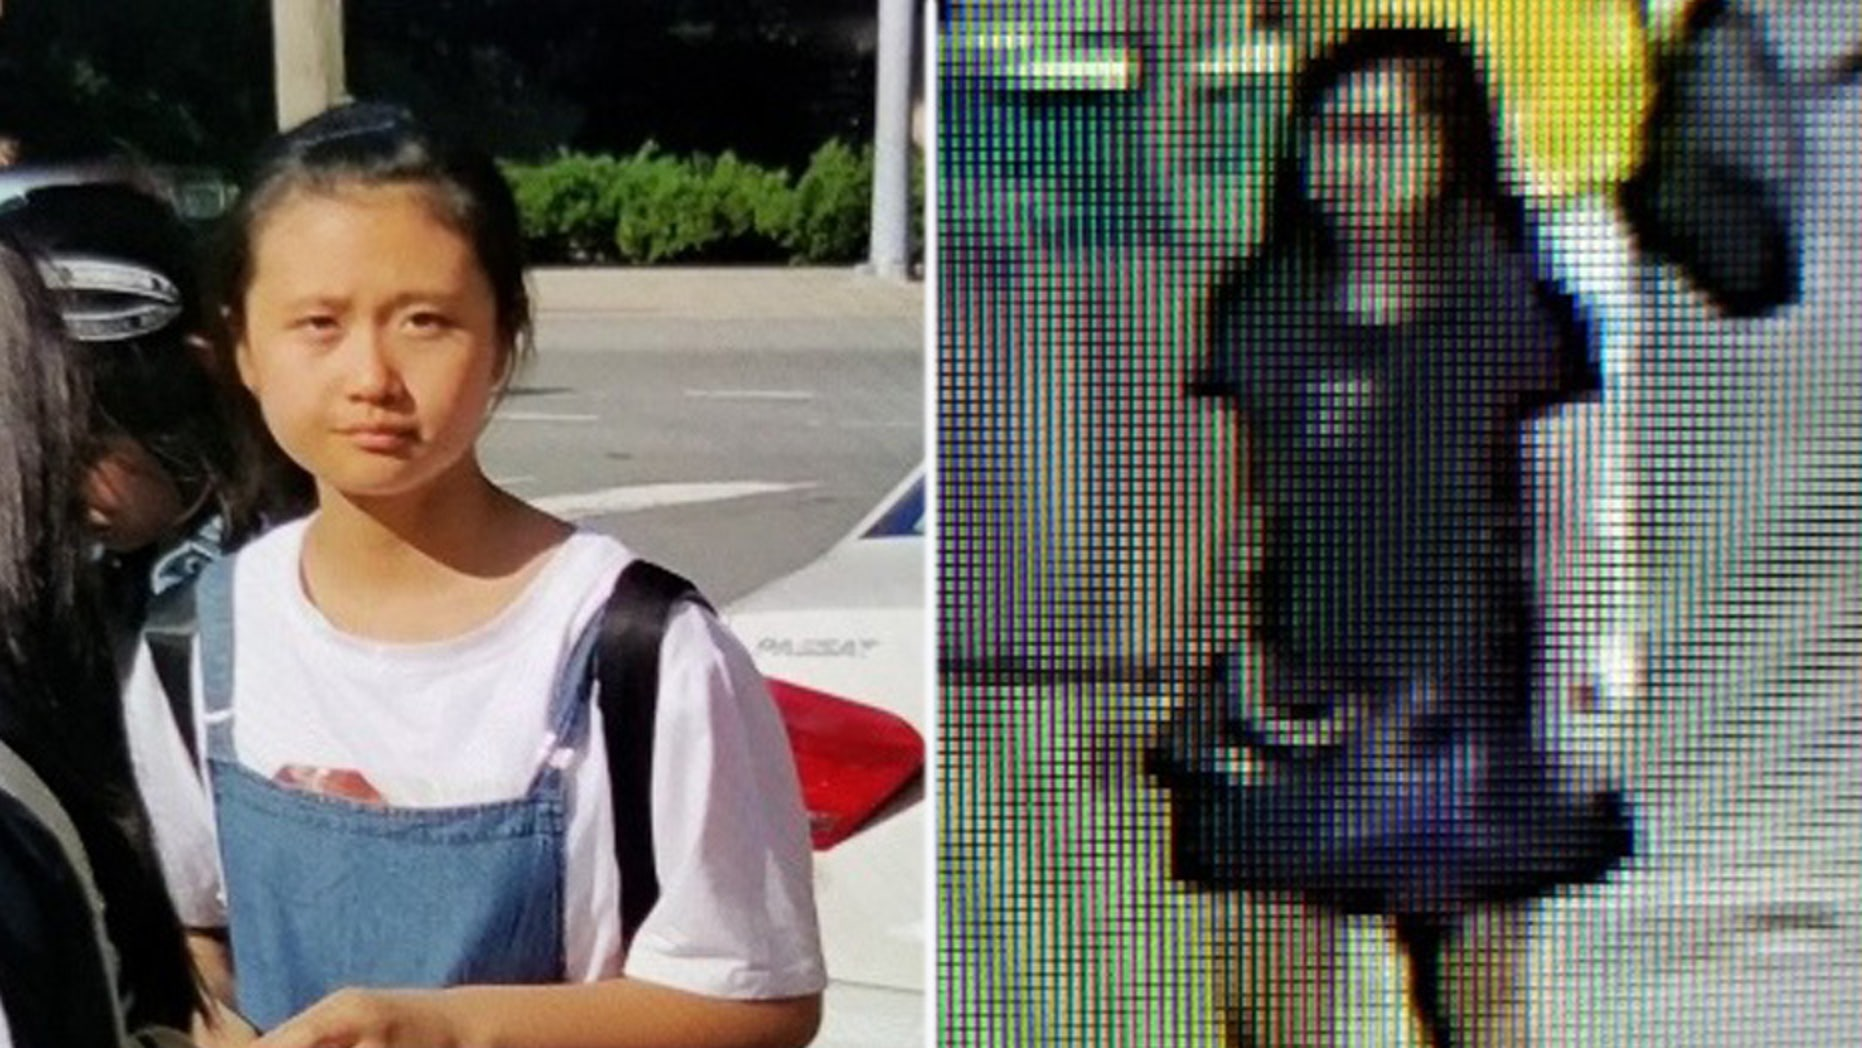 Virginia police issued an Amber Alert on Thursday for a 12-year-old girl from China who they believe was abducted from Ronald Reagan Washington National Airport.